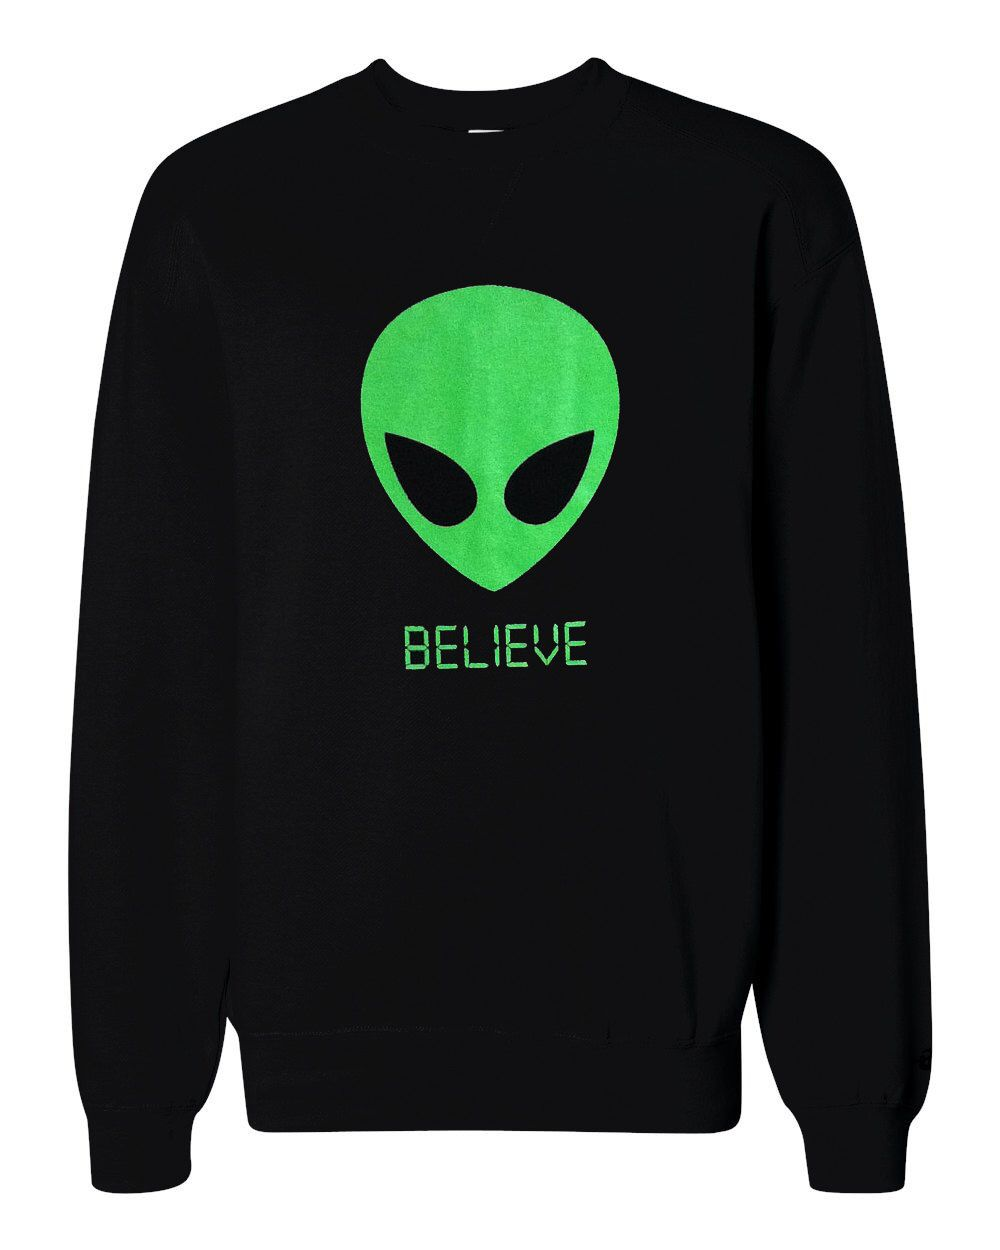 49585c3a92b7f3 Alien BELIEVE 90 s Sweater - UFO Martian Crewneck Sweatshirt - Unisex Sizes  S